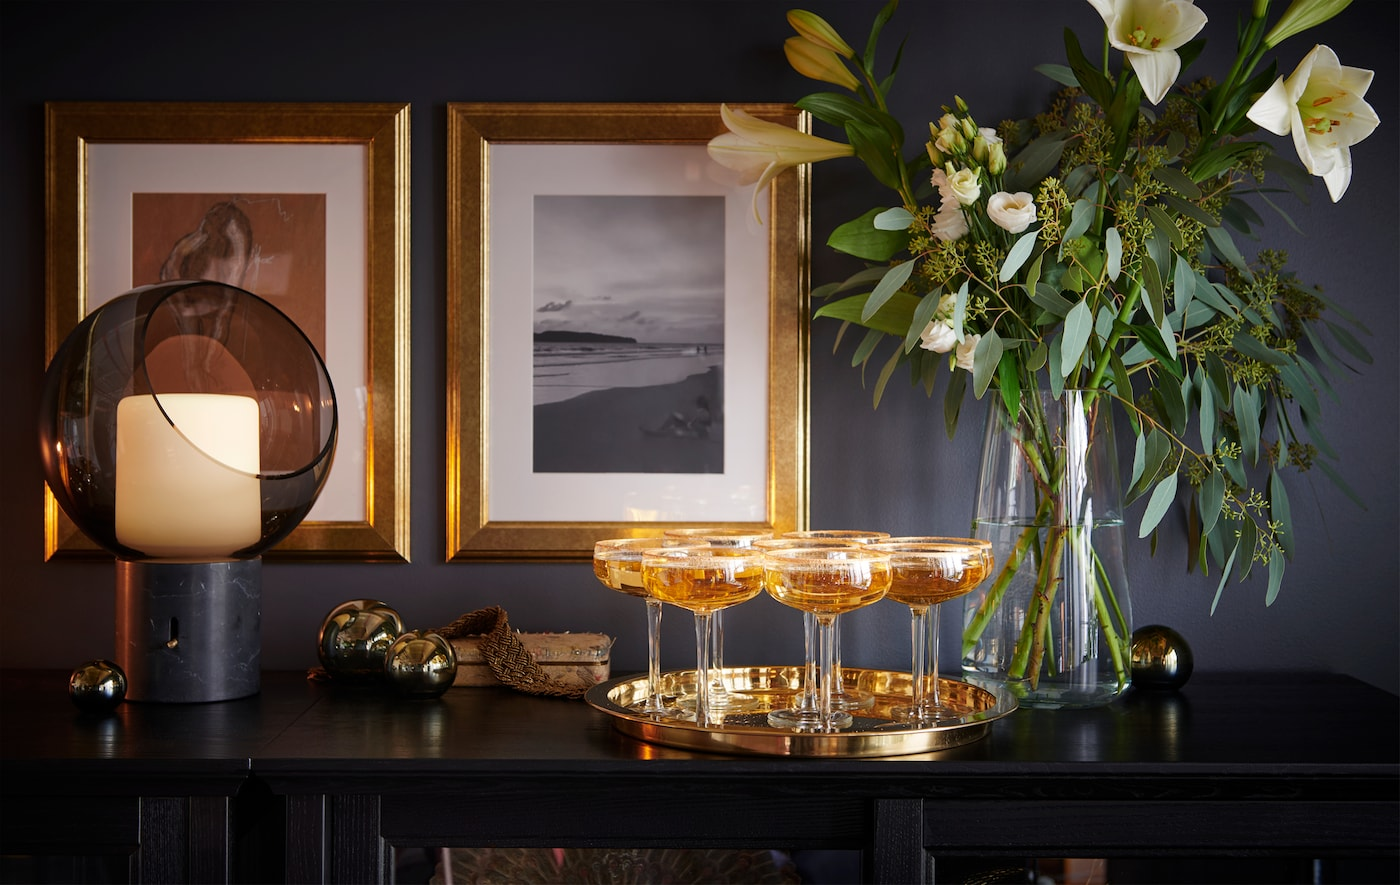 Planning to greet the new year with shiny gold and champagne? We've got some stylish, yet affordable ideas for you.